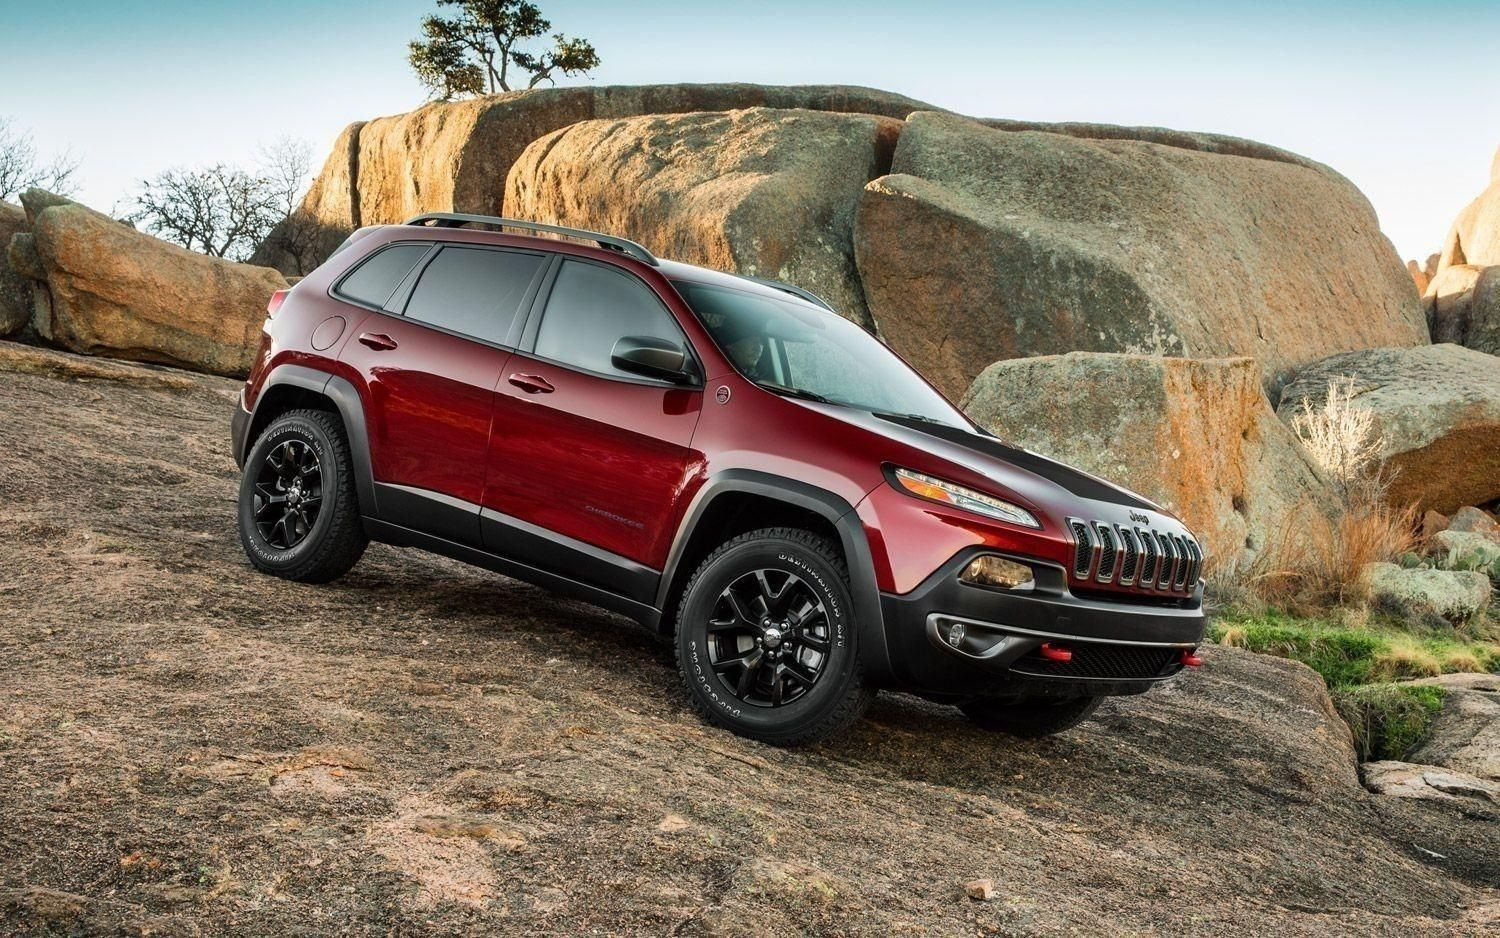 2019 Jeep Grand Cherokee Mpg Redesign My Car Review Most Reliable Suv Best Midsize Suv Best Compact Suv